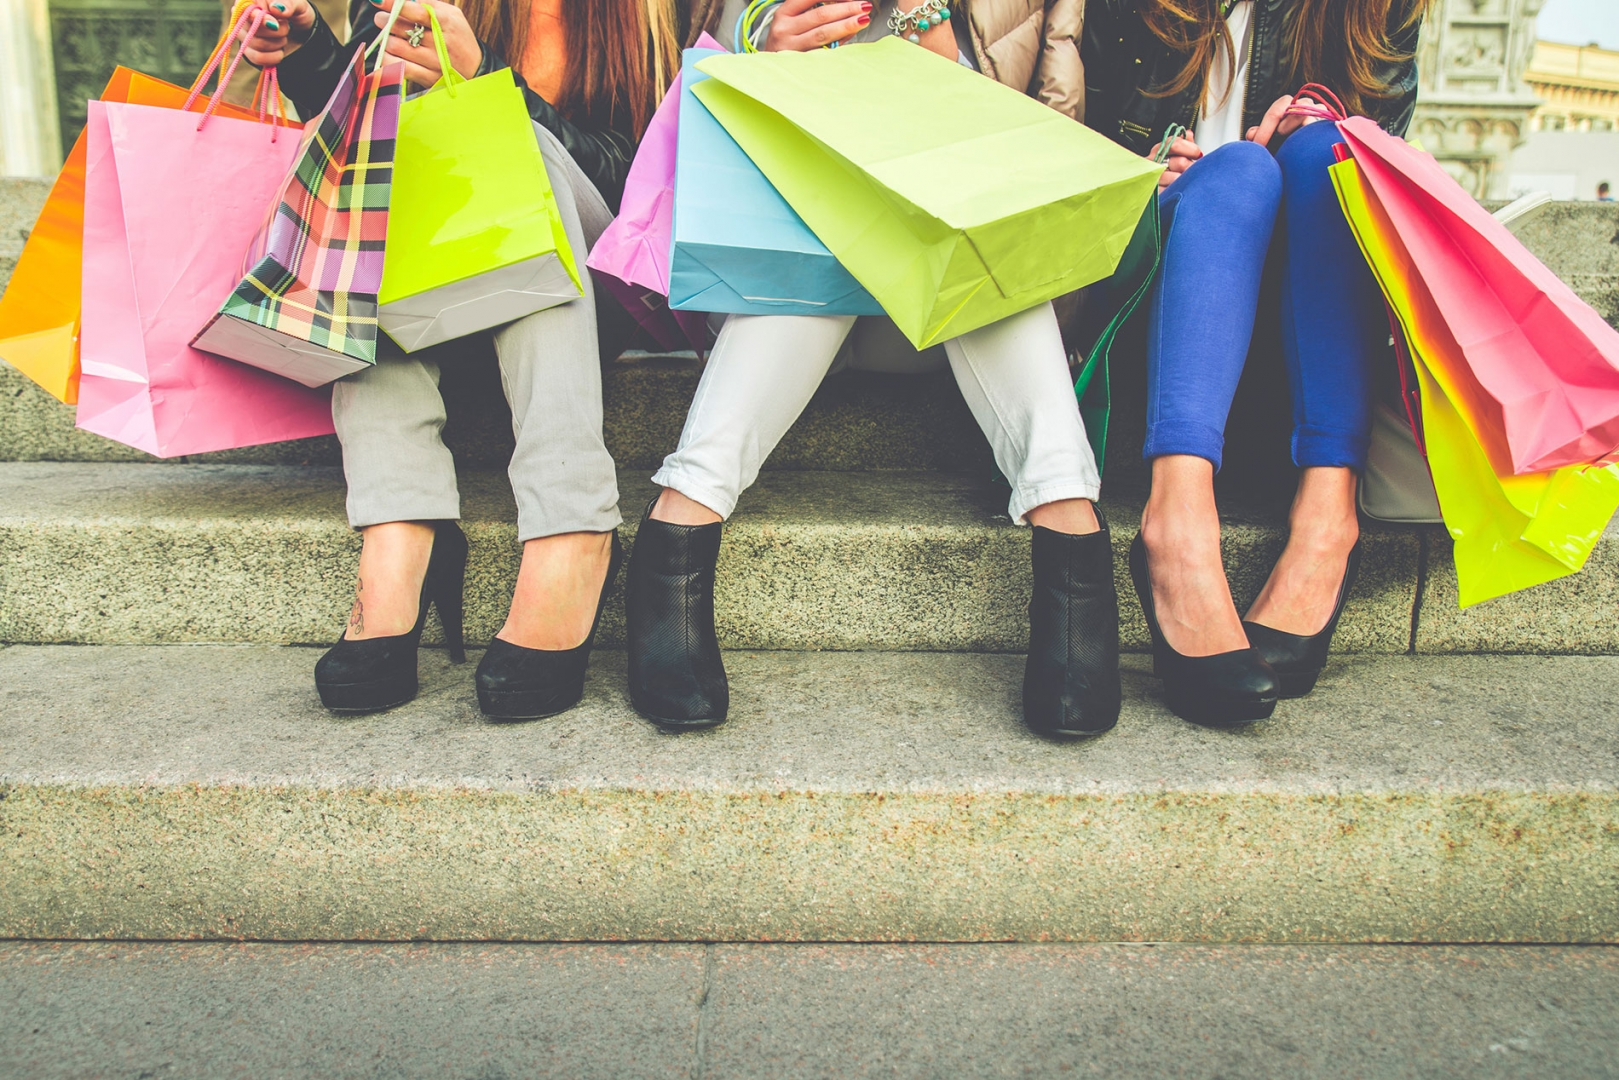 Female shoppers take a break from shopping